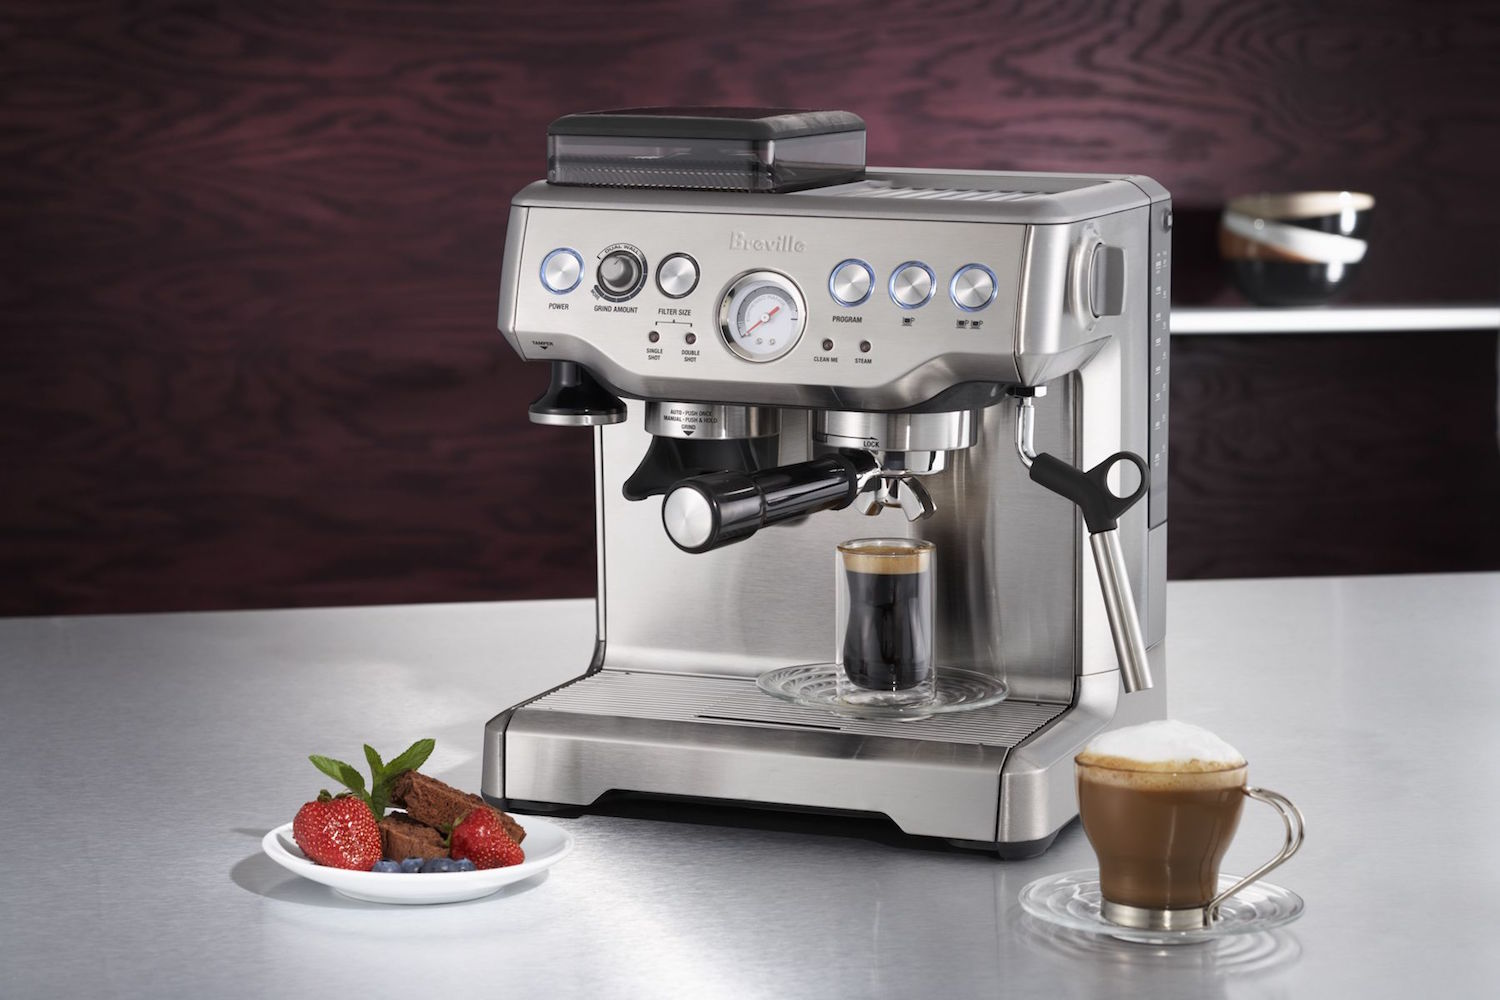 The best affordable espresso machines you can buy in 2019 - Breville Barista Express 3